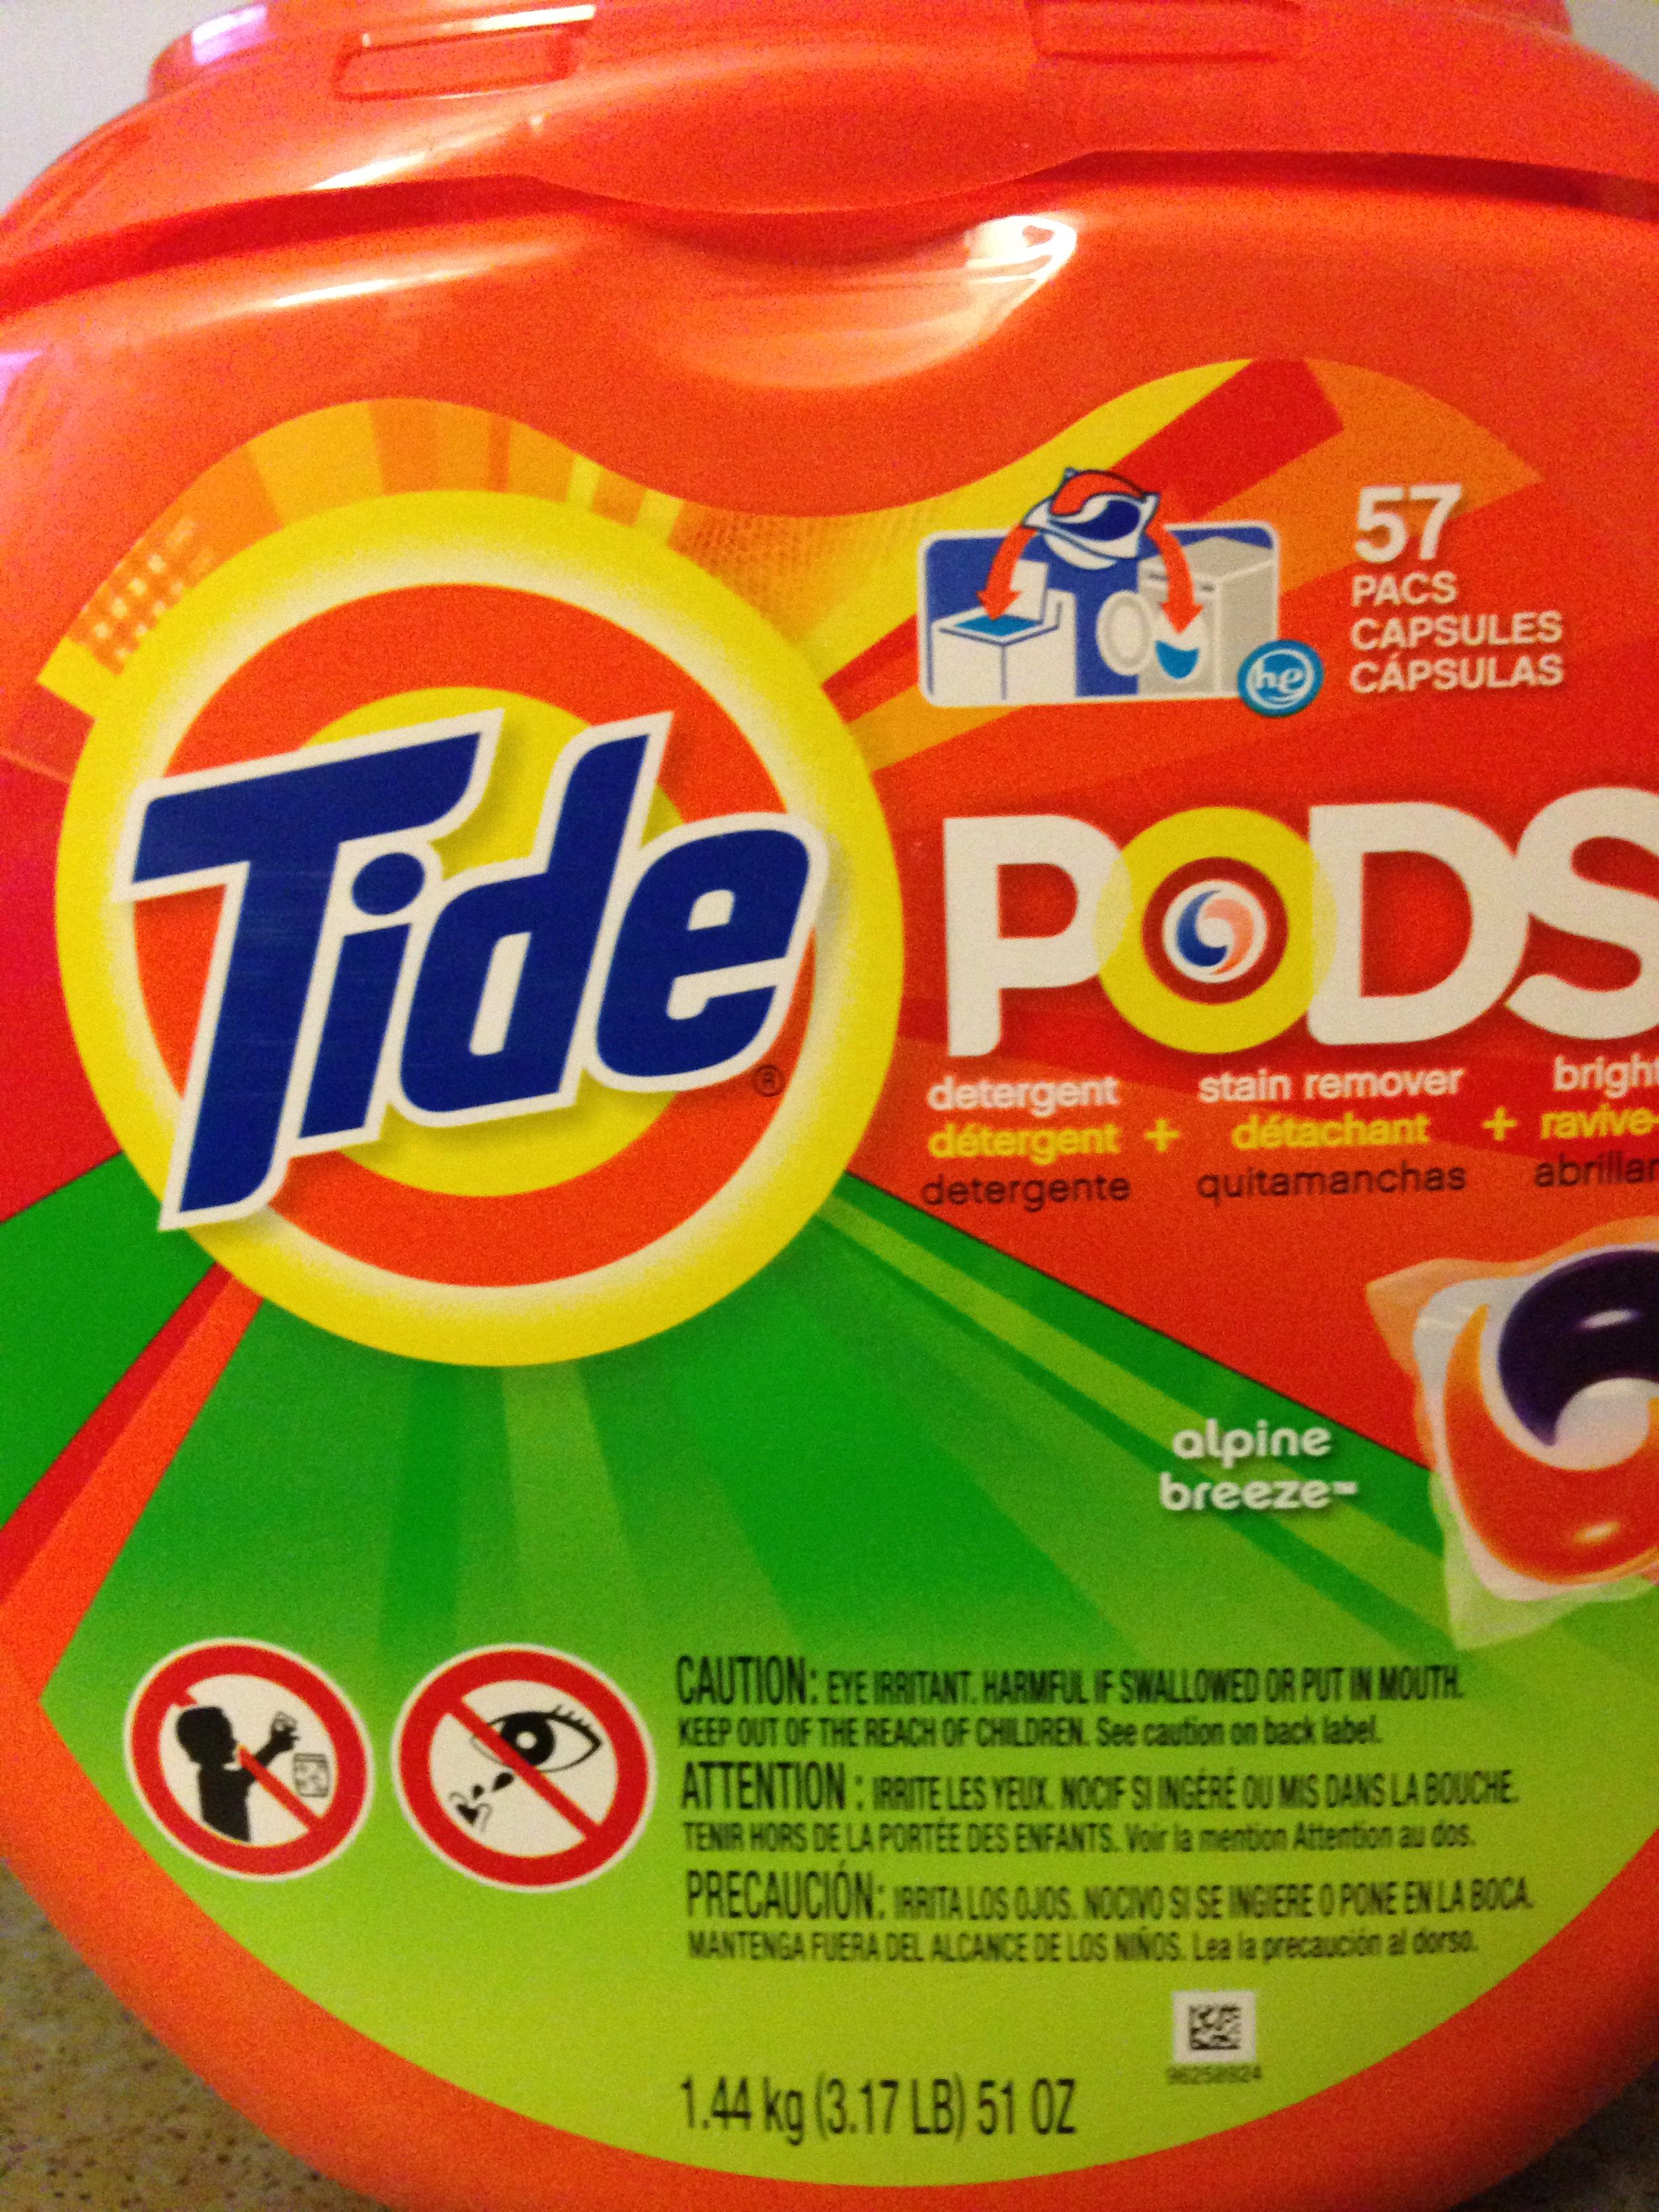 7 99 Tide Pods 57ct At Dillions 8 99 Use 1 00 1 Tide Pods E Coupon Dillions Com Final Price 7 99 Or 0 14 A Pod Tide Detergent Tide Pods Laundry Pods